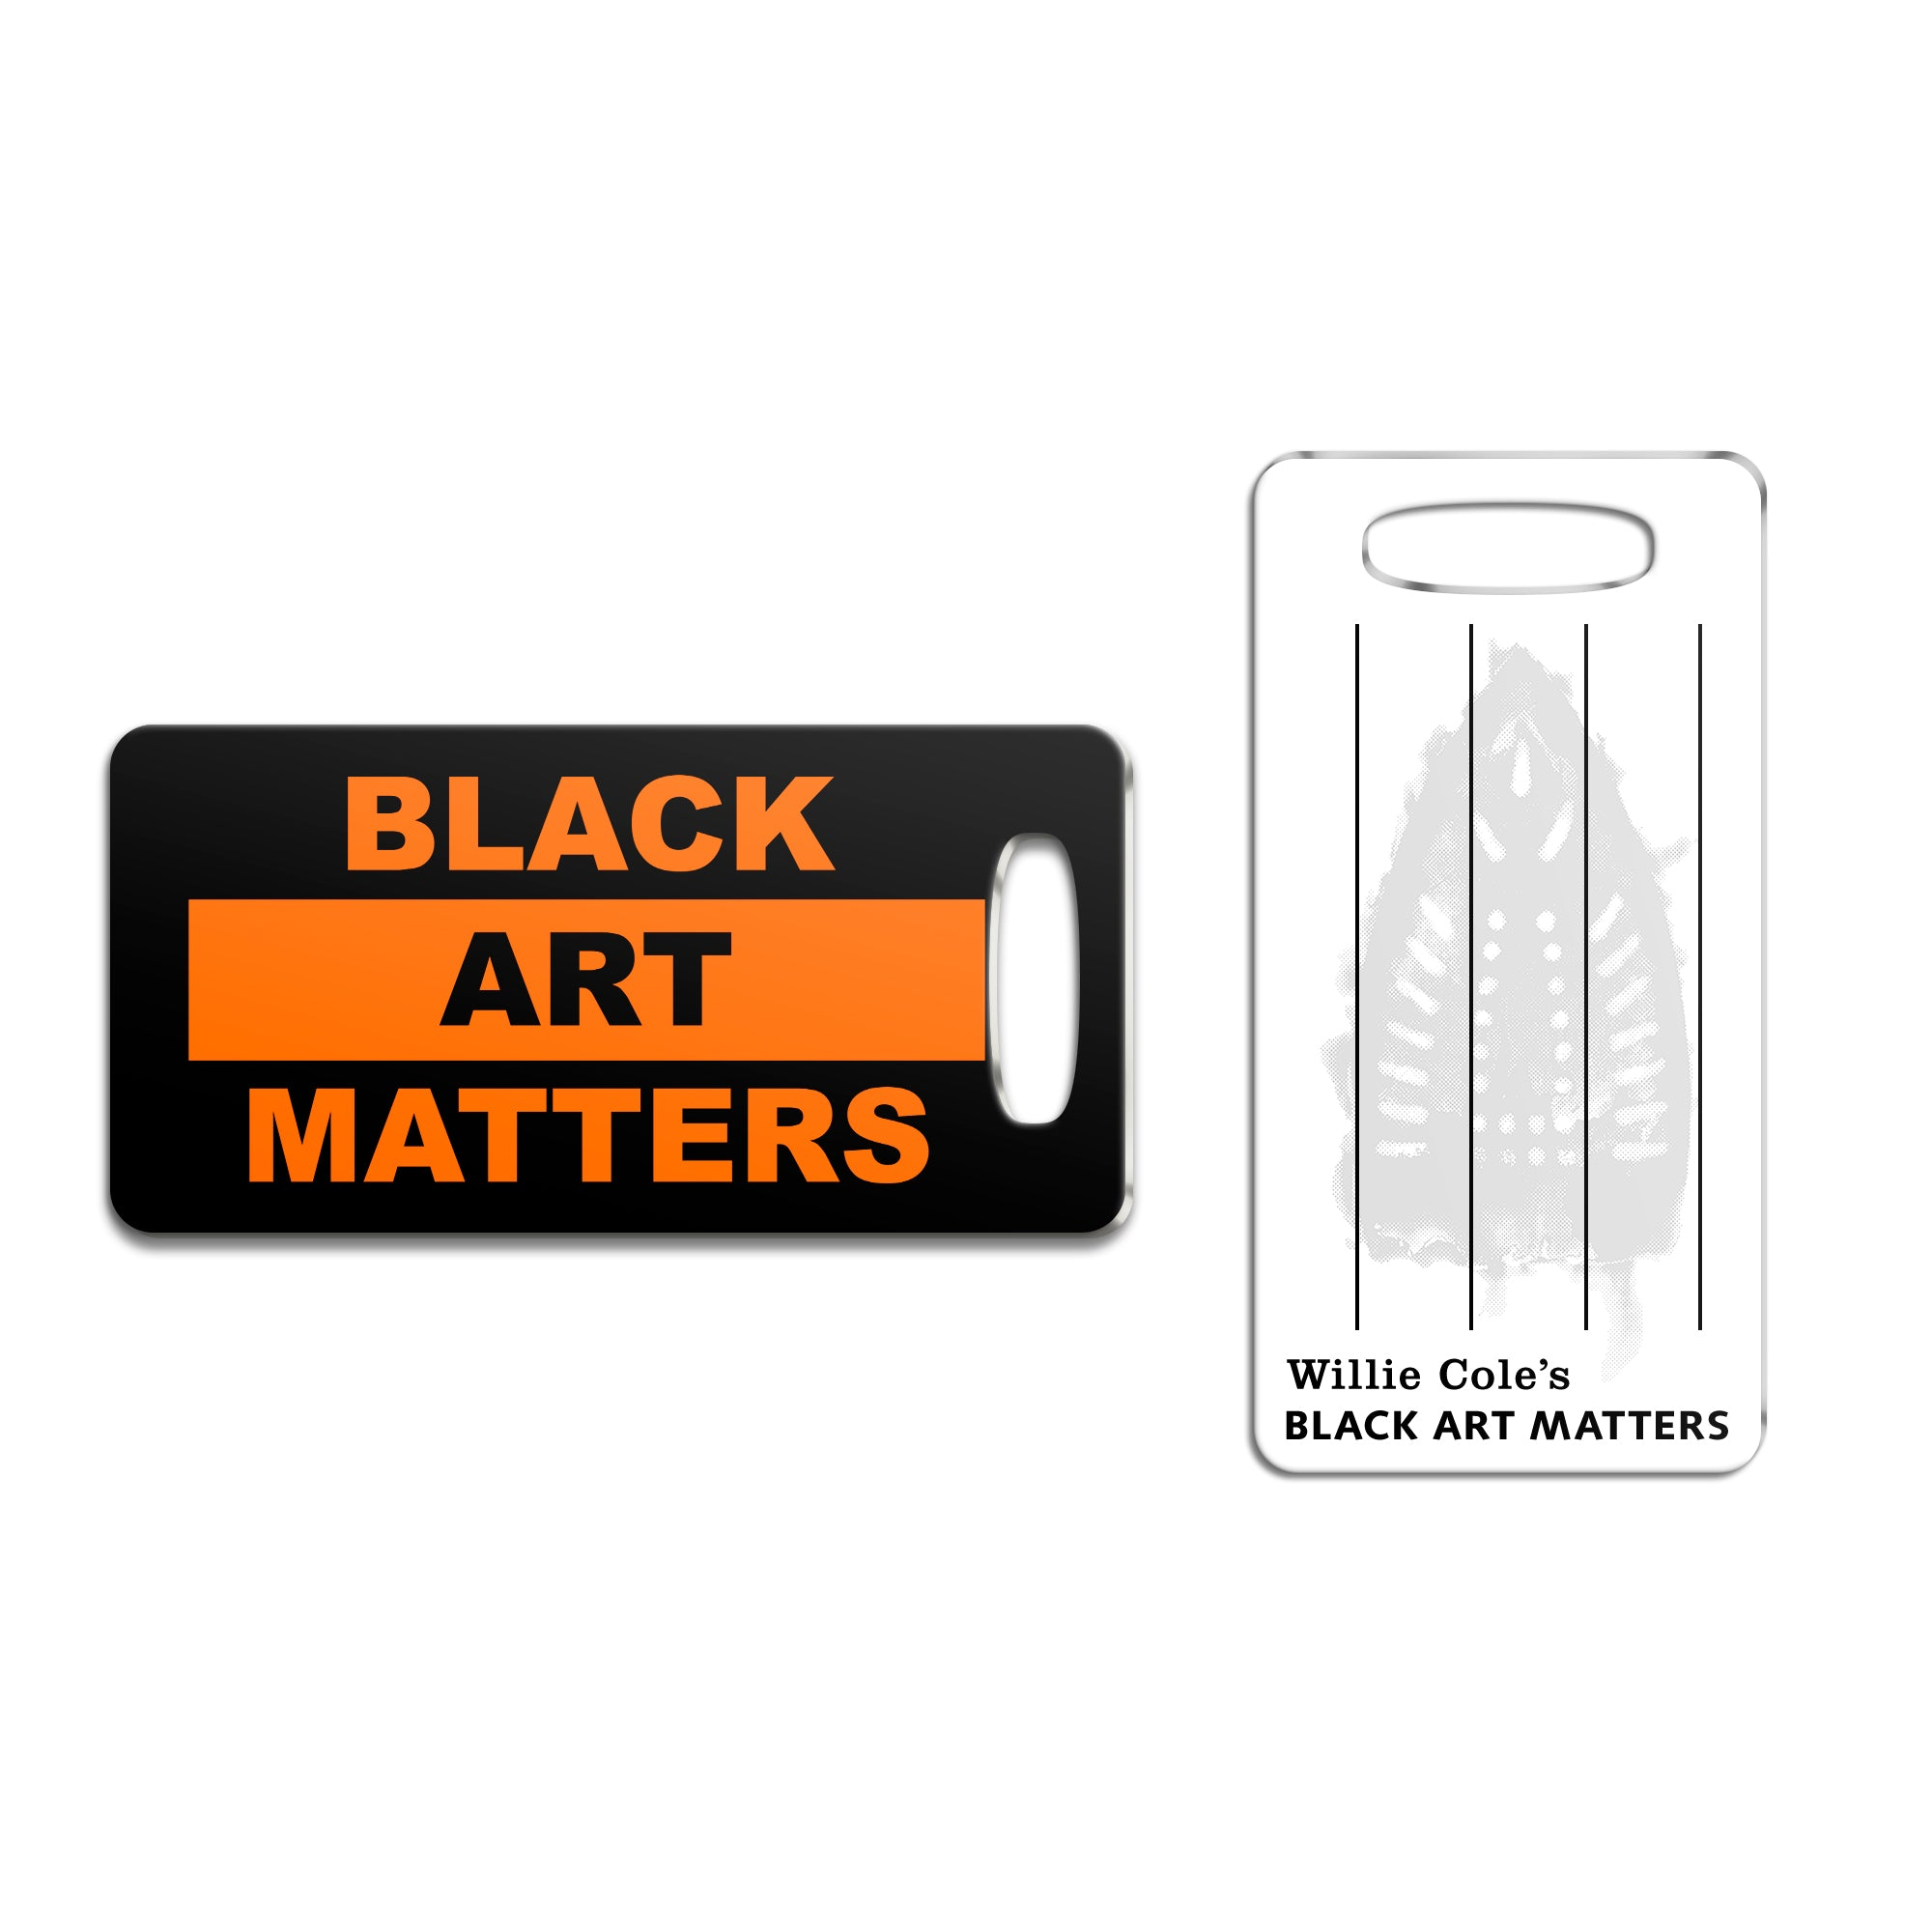 Willie Cole Black Art Matters Luggage Tag